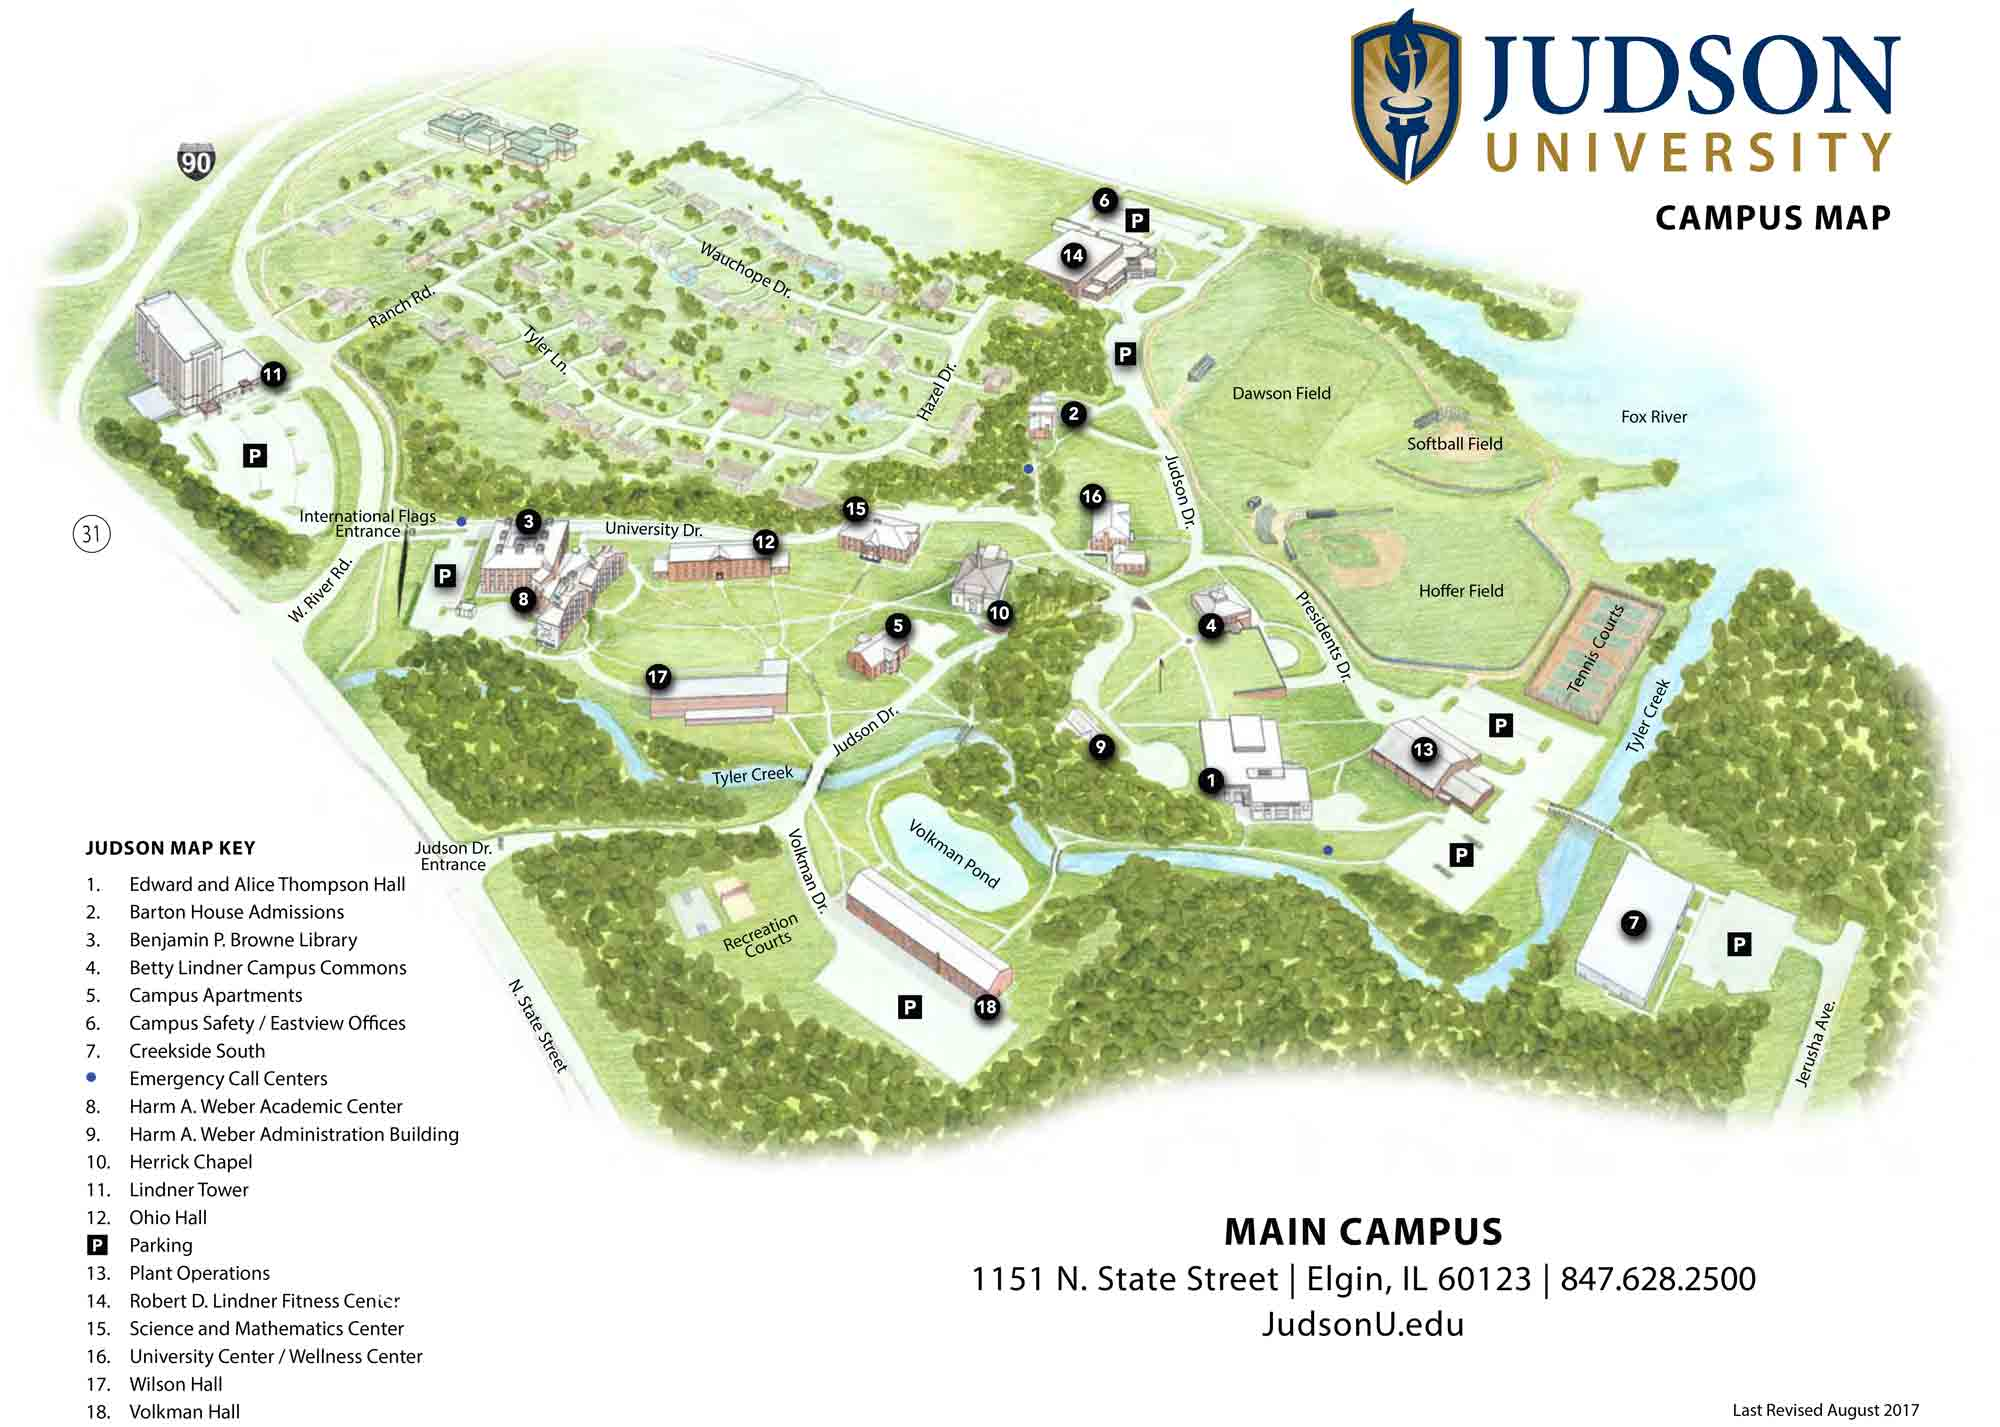 Judson Campus Map 2017